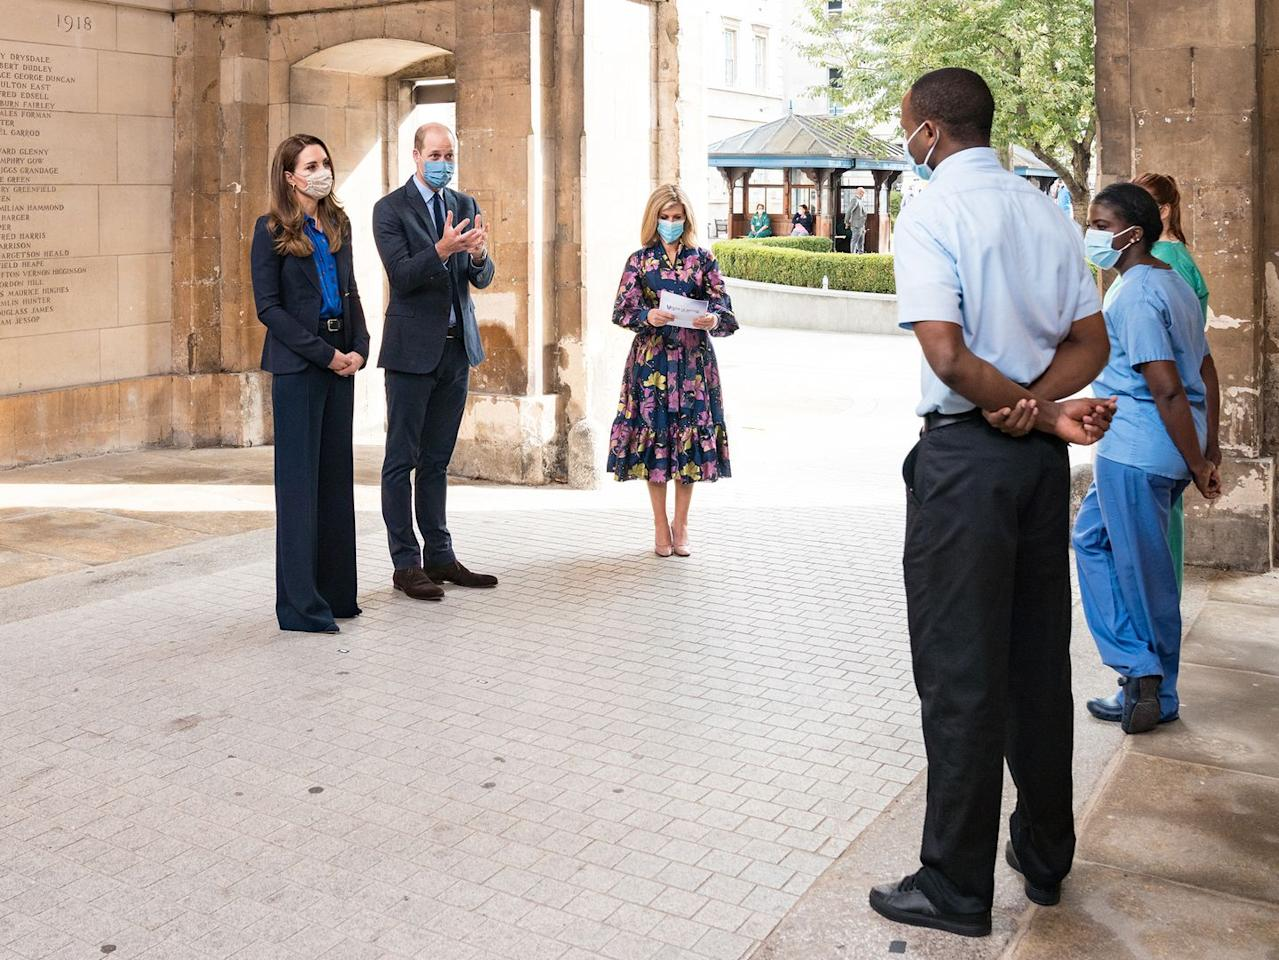 <p>The Duke and Duchess of Cambridge sported matching suits while presenting a Pride of Britain award to NHS frontline workers. The ceremony occurred at London's St Bartholomew's, Britain's oldest free hospital. Of course, the duo paired their pantsuits with protective masks. </p>